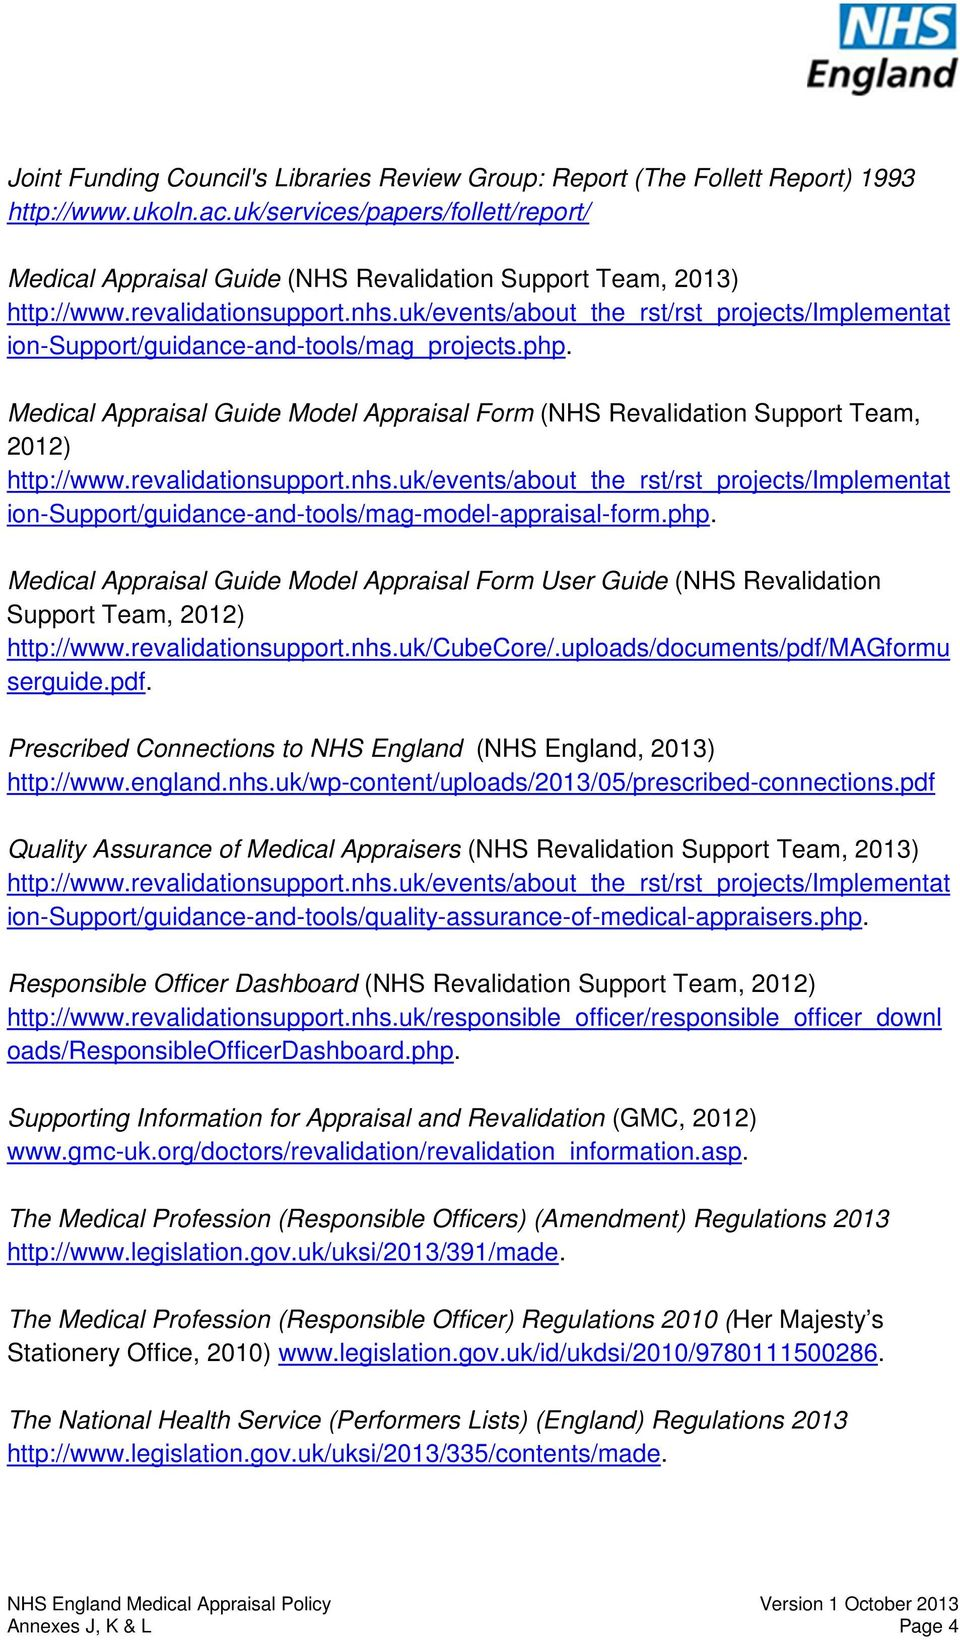 uk/events/about_the_rst/rst_projects/implementat ion-support/guidance-and-tools/mag_projects.php. Medical Appraisal Guide Model Appraisal Form (NHS Revalidation Support Team, 2012) http://www.